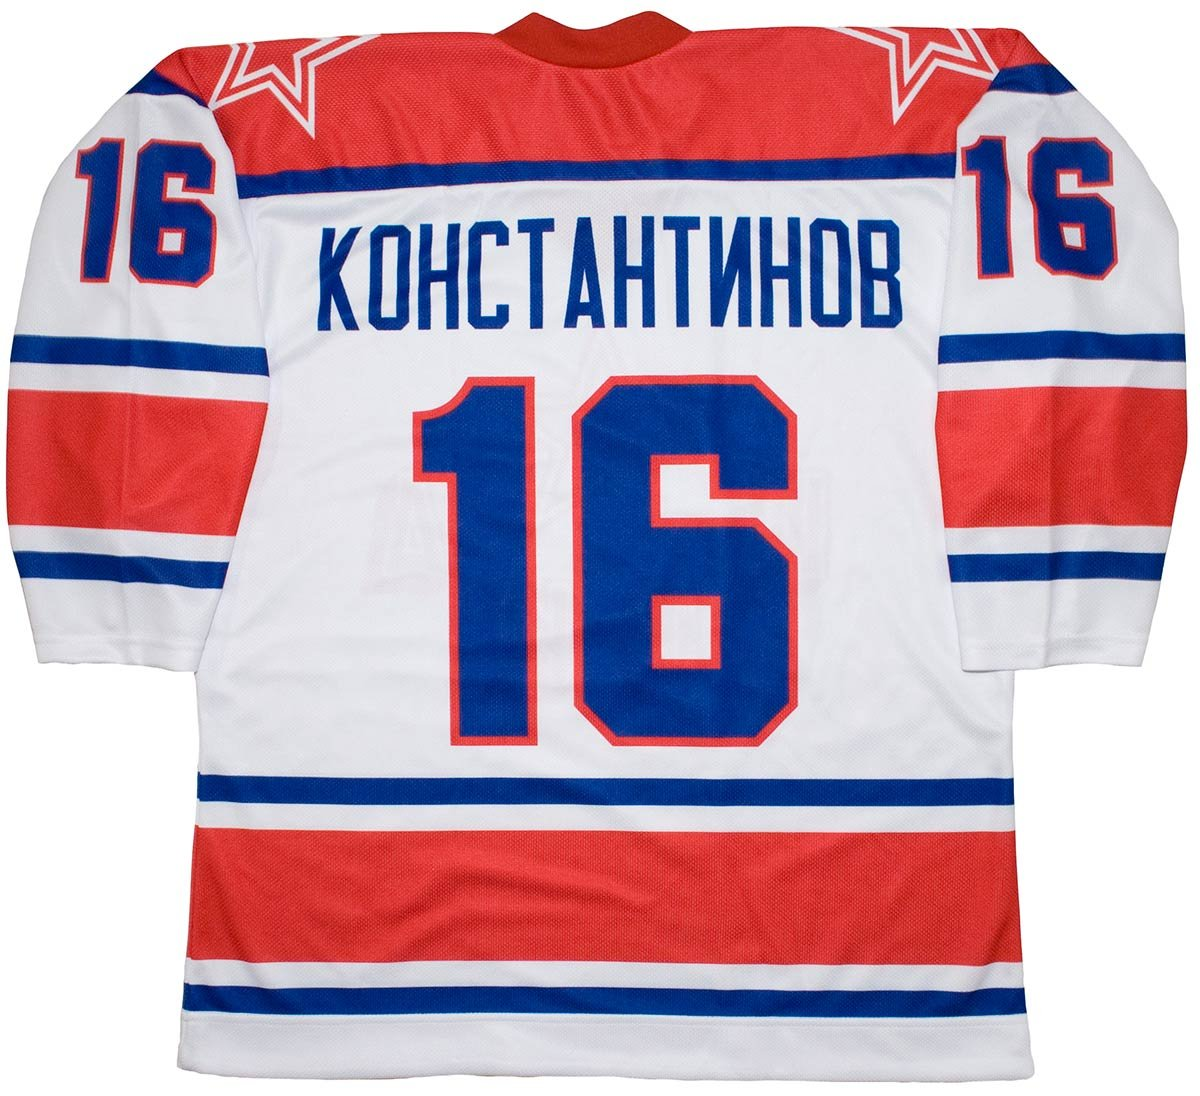 Amazon.com   Vladimir Konstantinov Moscow Red Army 1997 Russian White  Hockey Jersey   Clothing 5417a1830c1